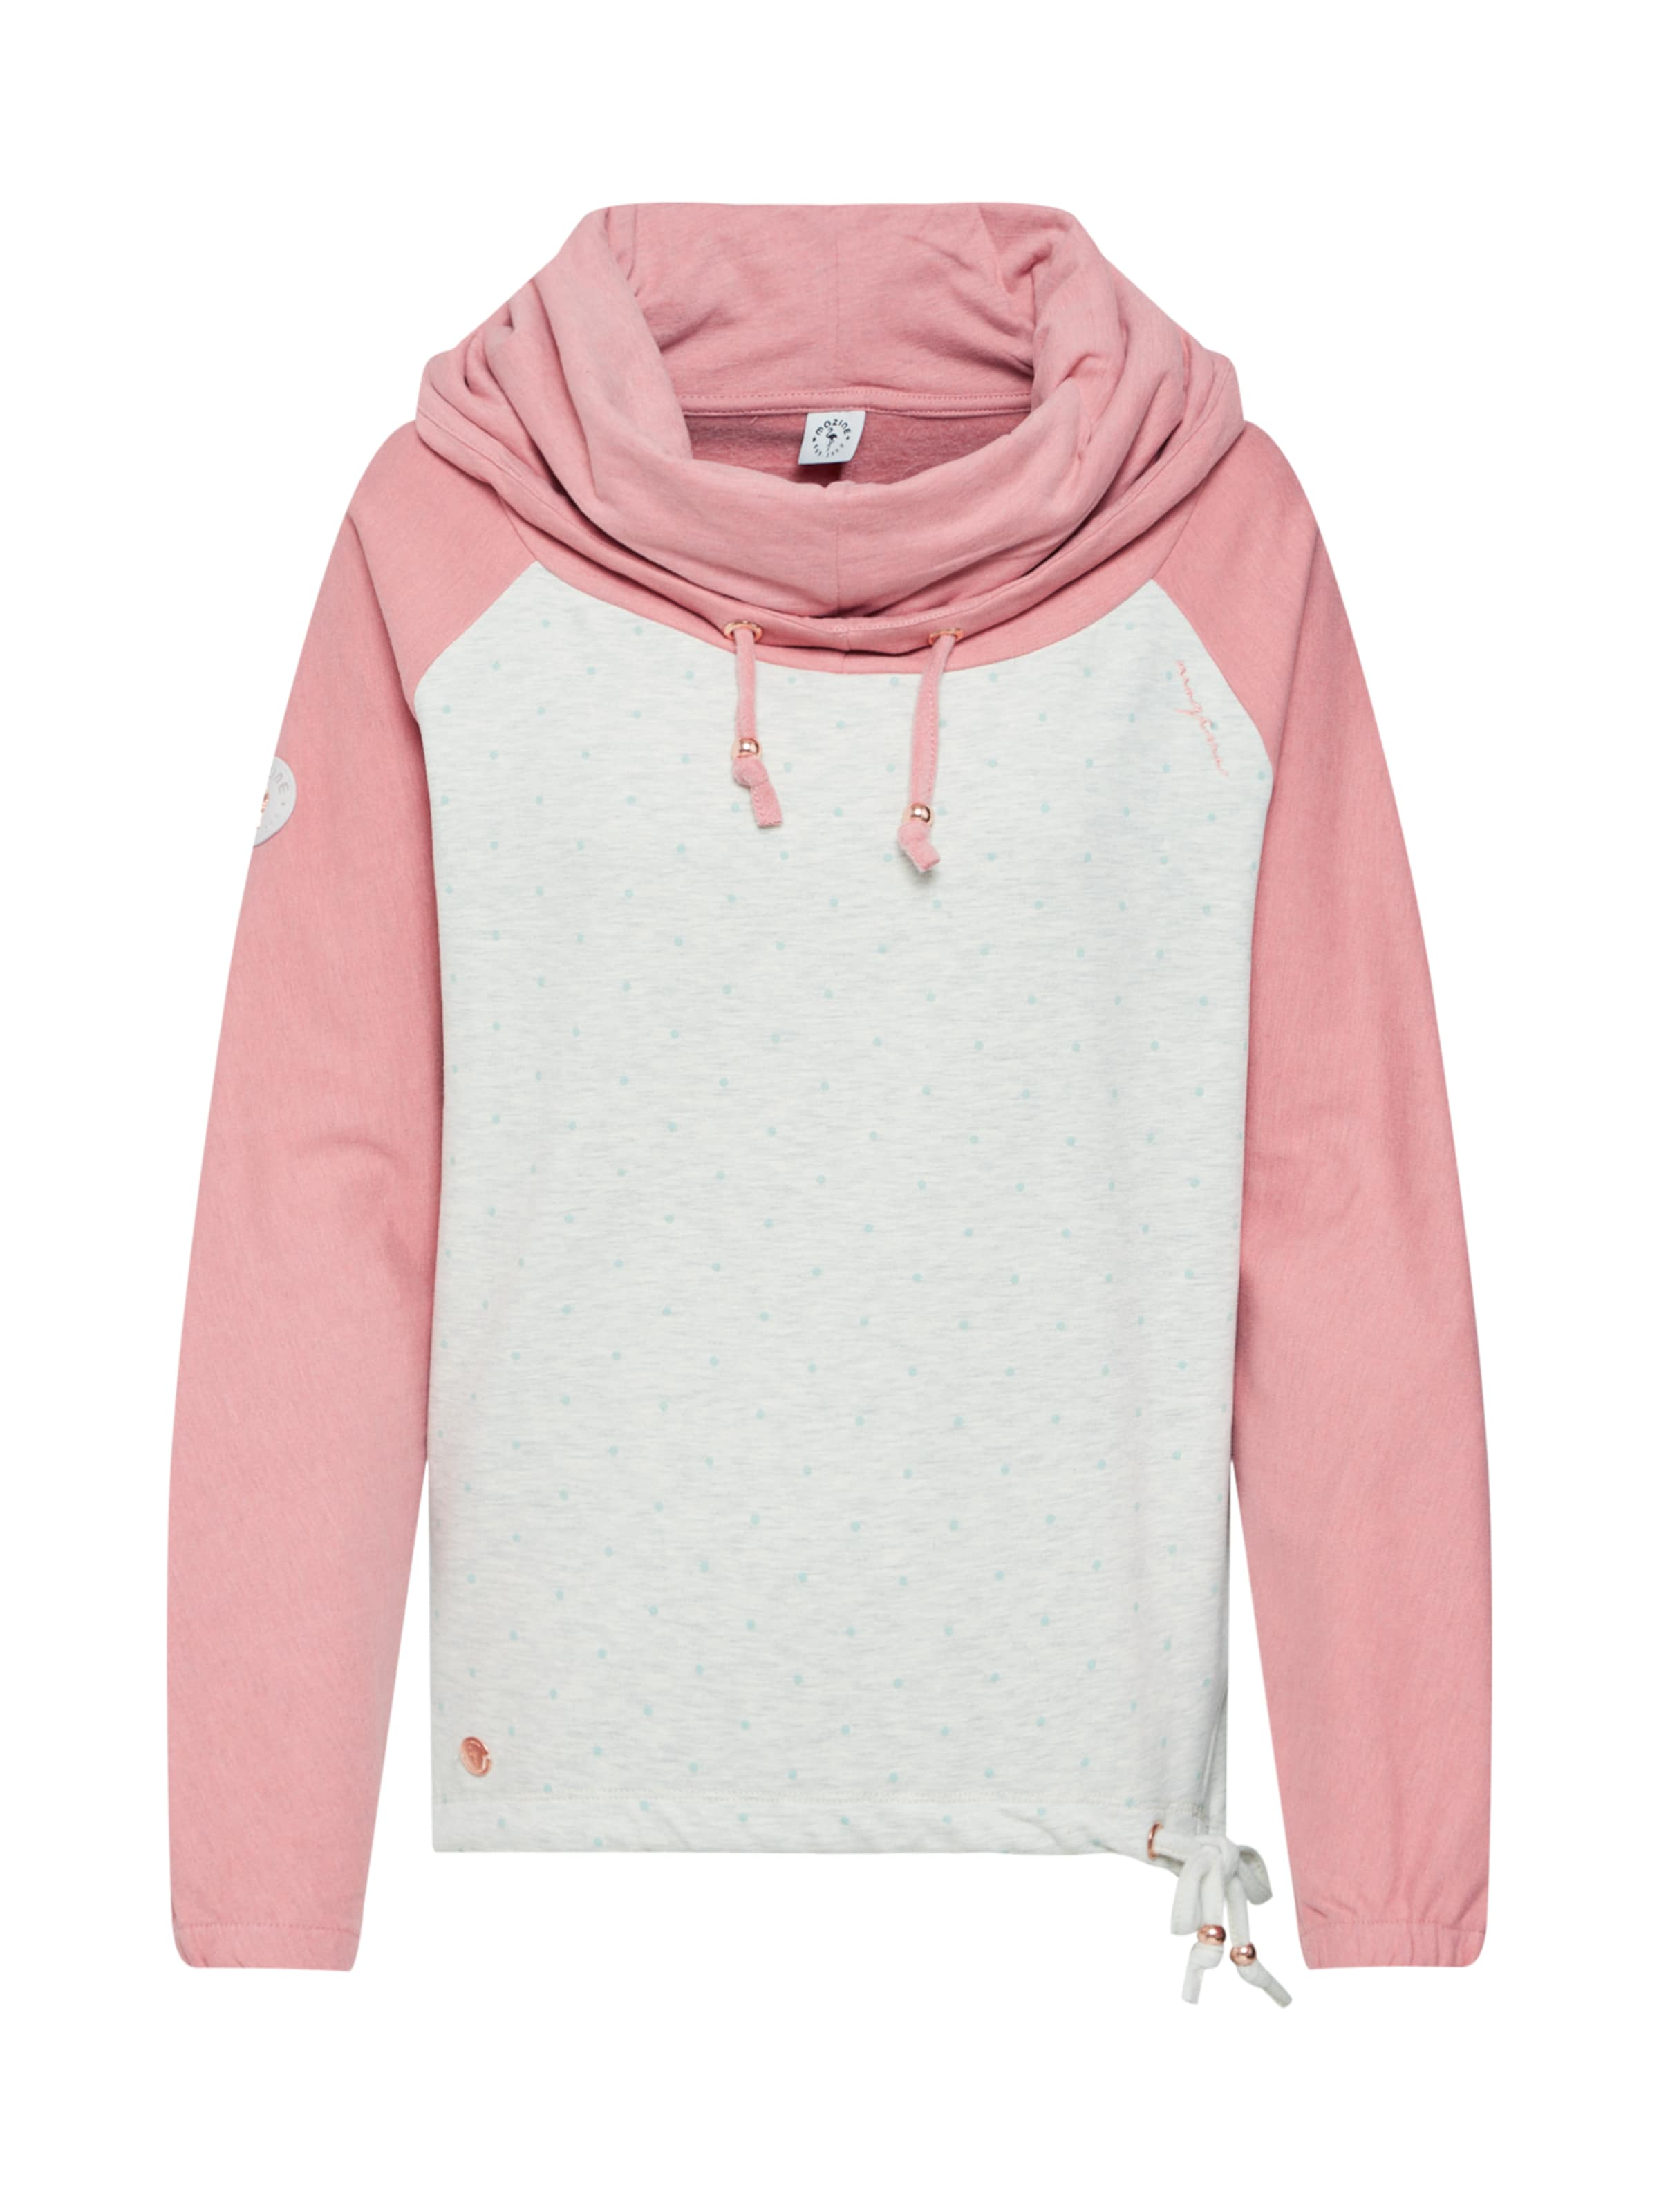 Sweat Mazine En shirt En Sweat Baie Mazine Mazine shirt Baie Sweat shirt nkXN8ZOP0w